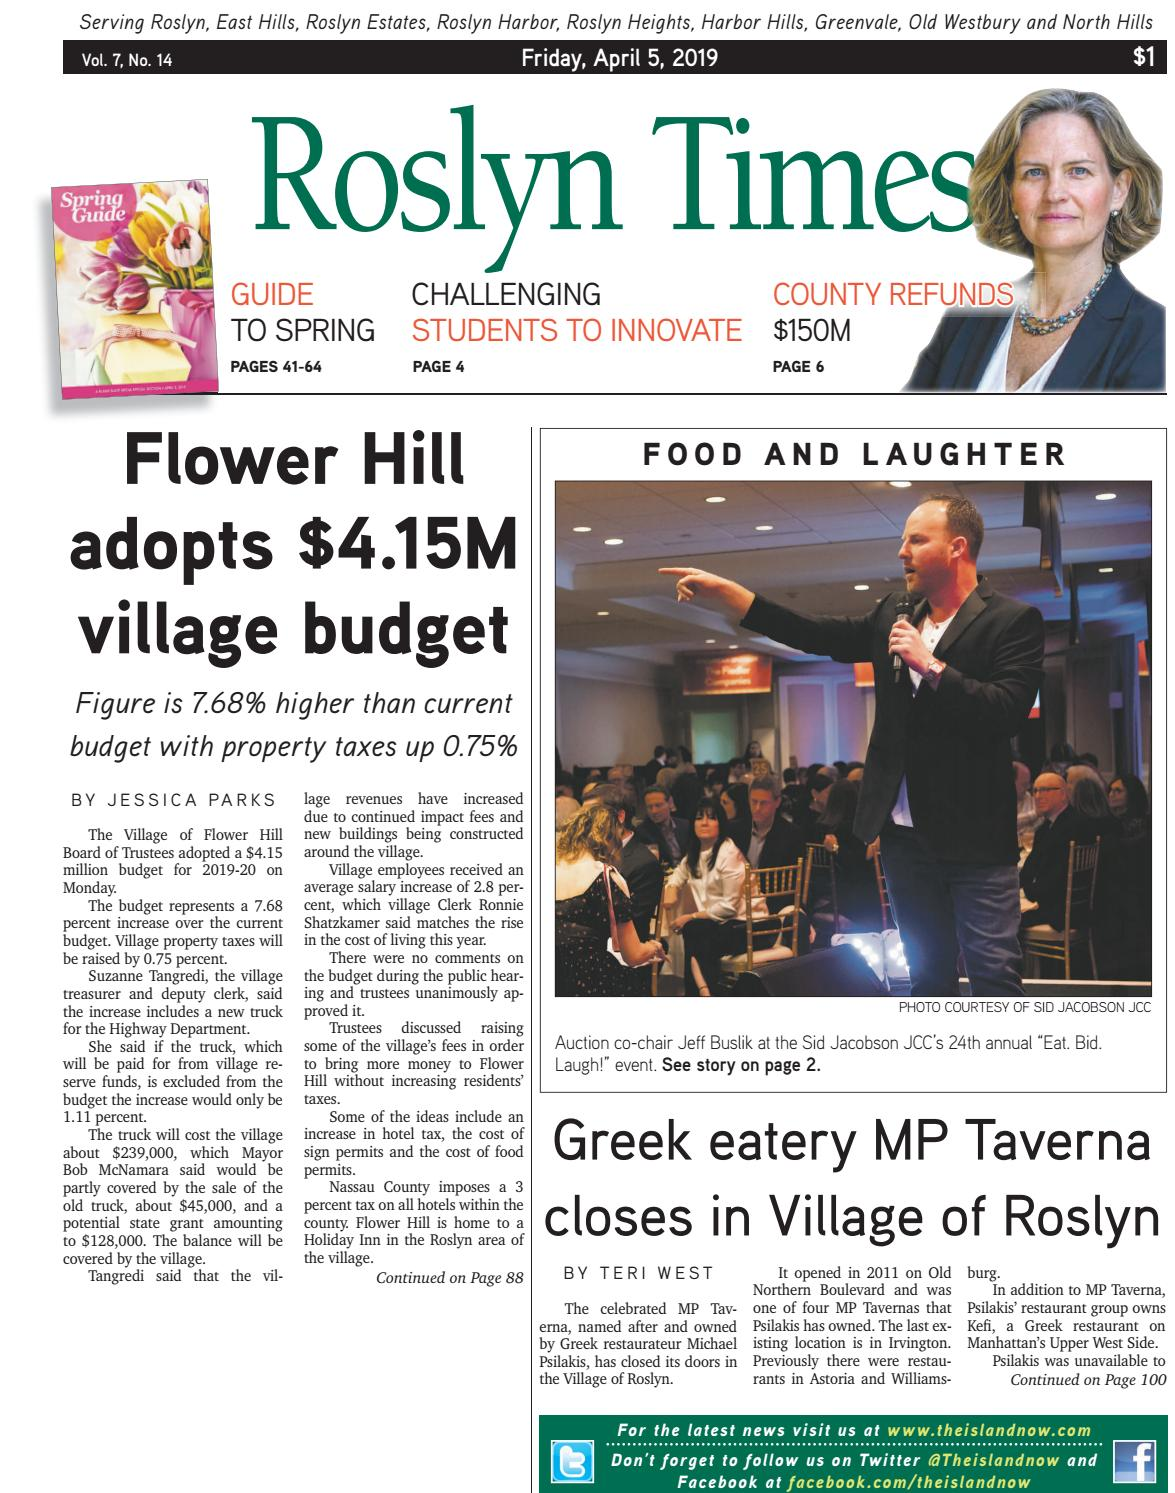 Roslyn 2019 04 05 Pdf By The Island Now Issuu